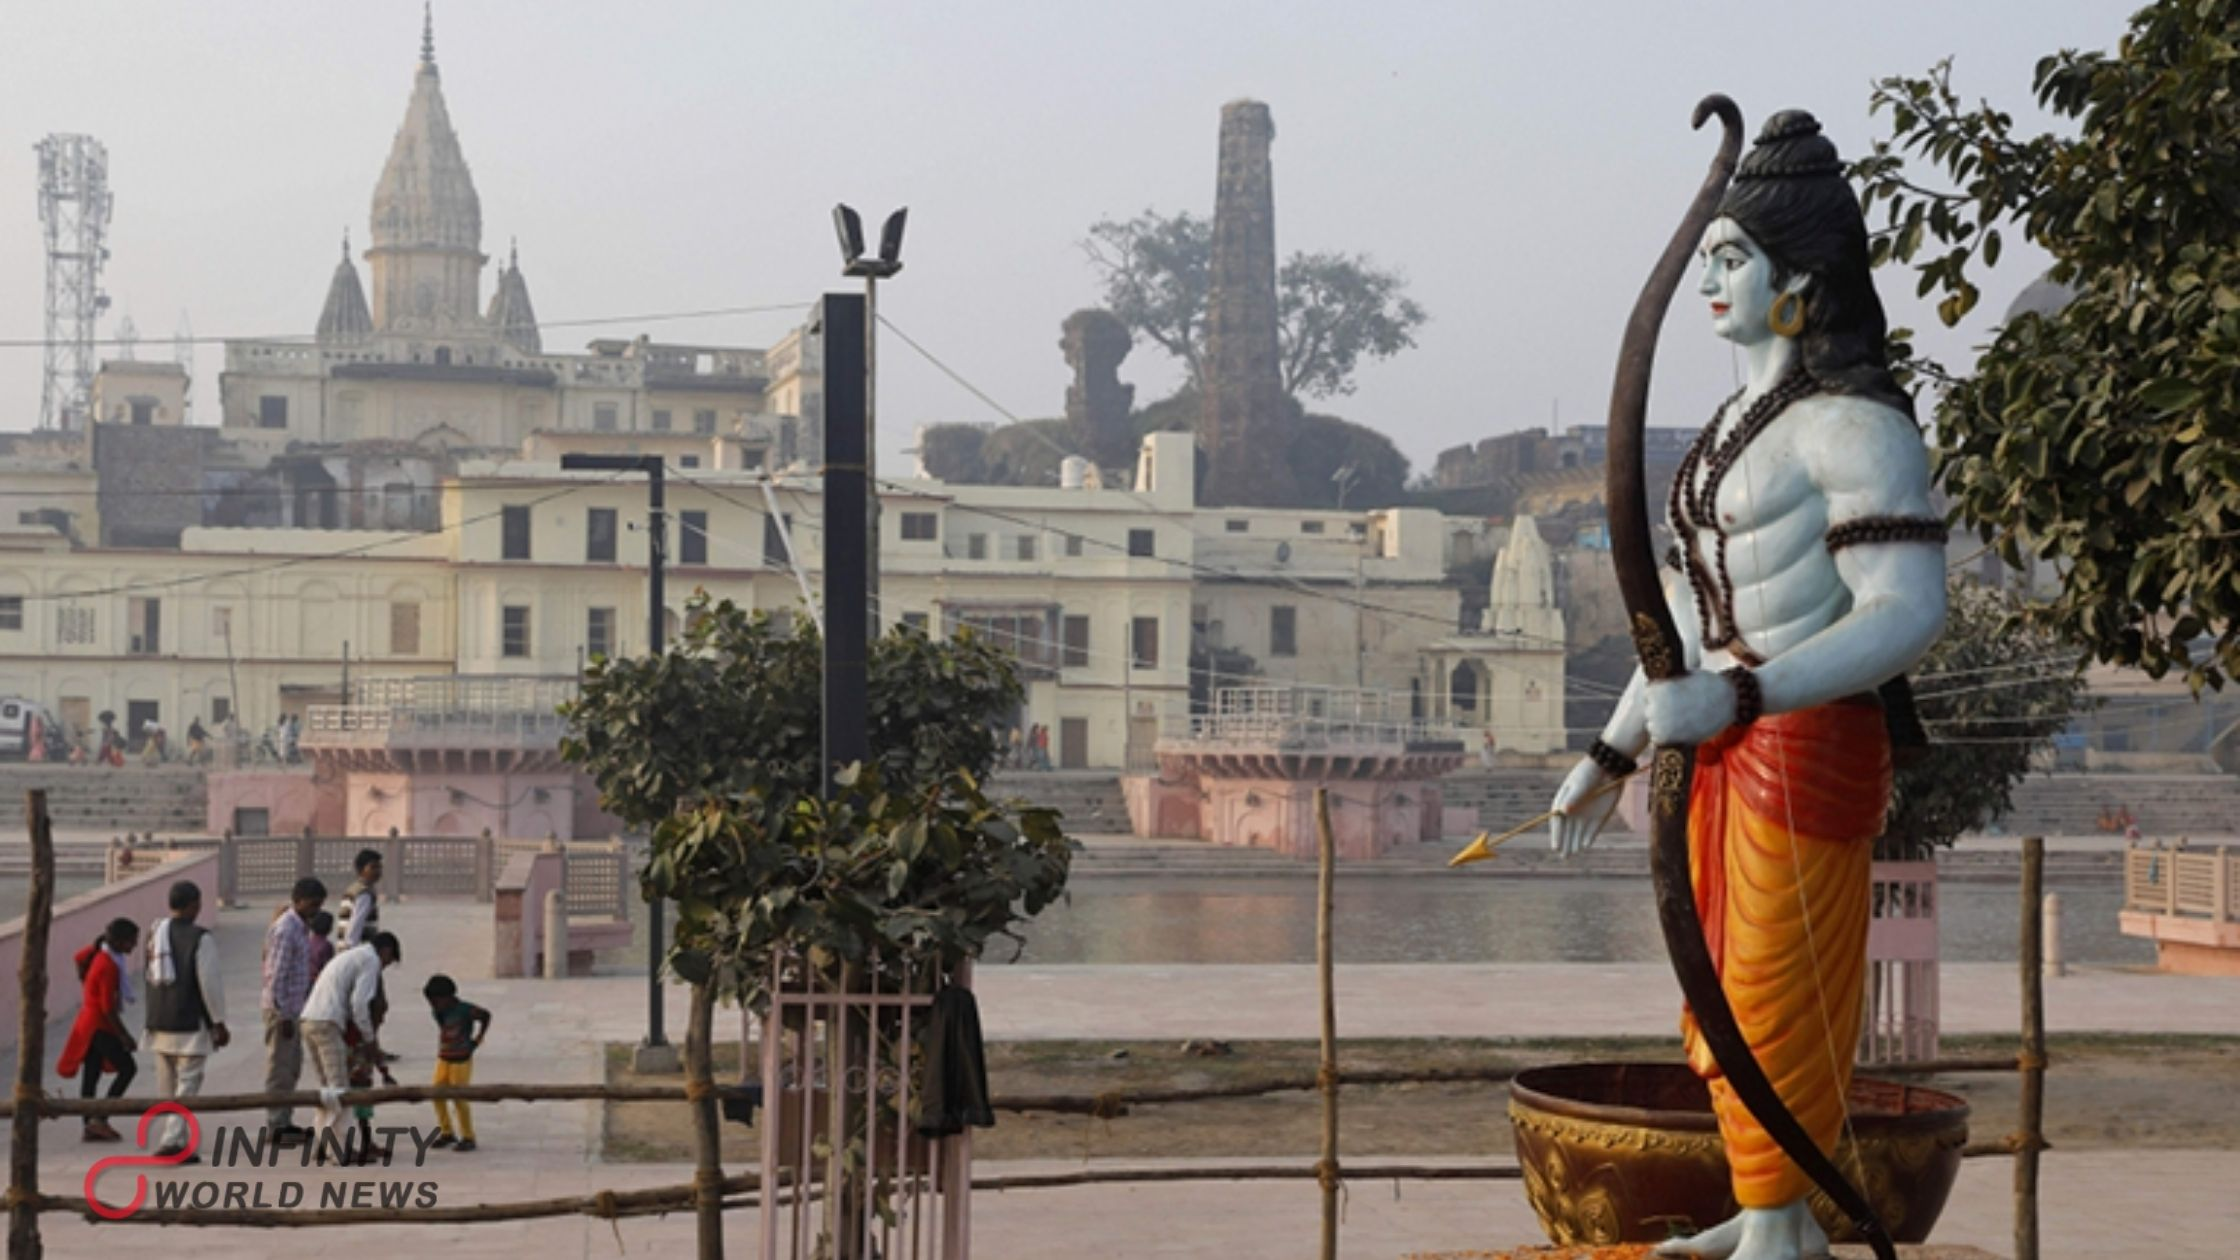 Amazing Ayodhya'_ The New Book to Tell The History of Lord Rama's Birth Place Ayodhya